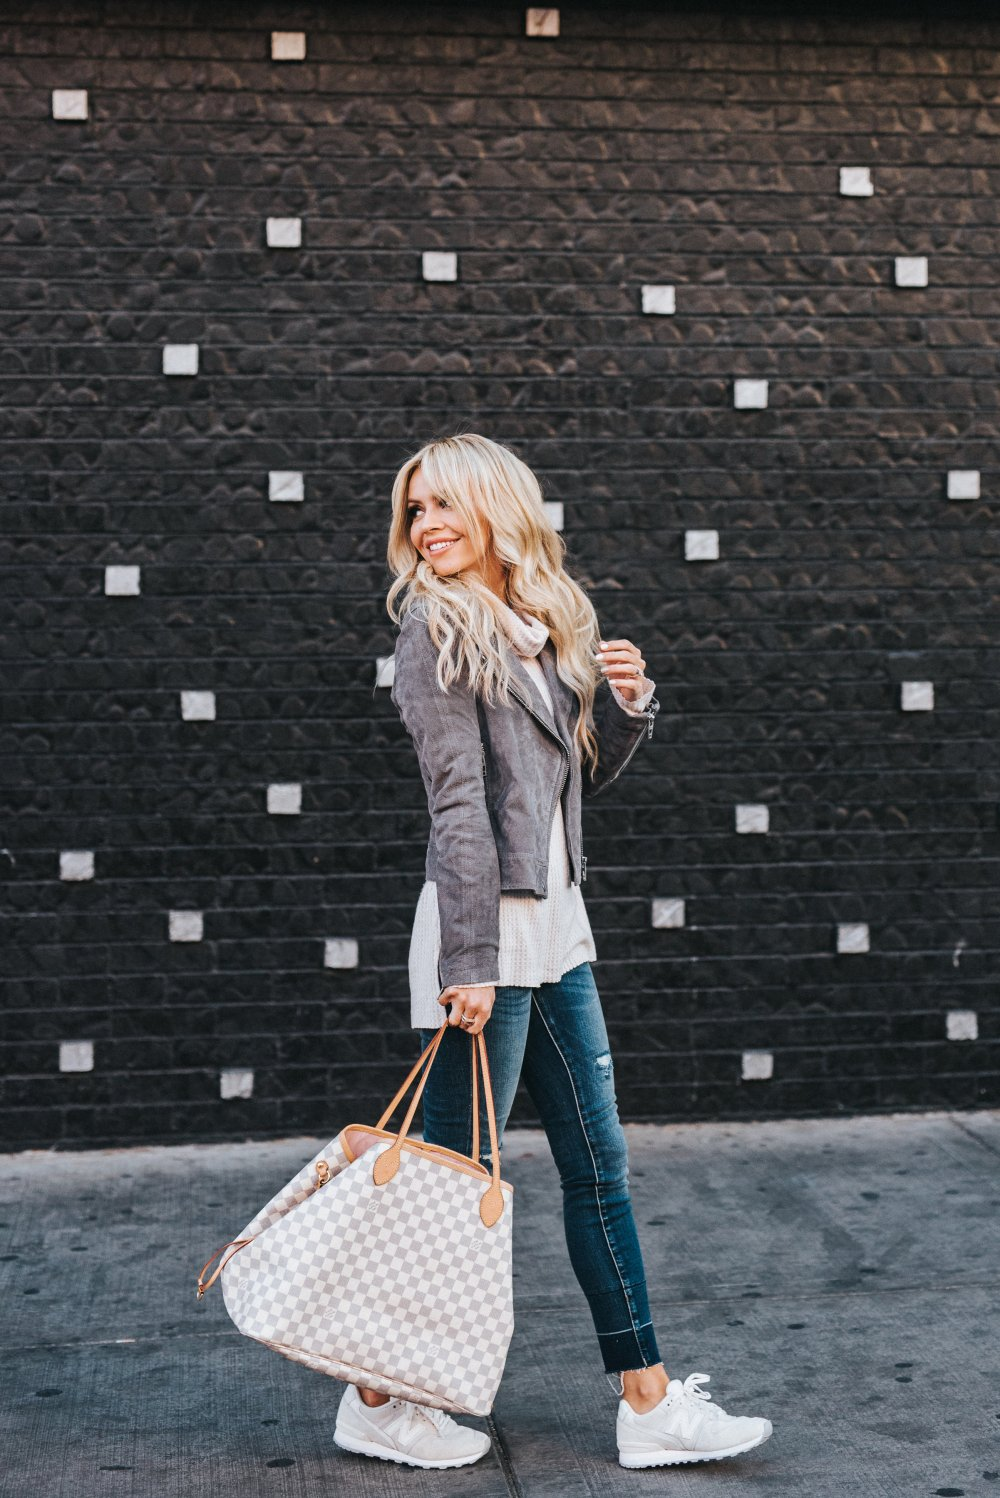 It's important to slow down and really enjoy the moments of life! This comfortable yet fashion forward outfit is perfect for catching up with friends or a family get together! #comfystyle #womensfashion #slowdown